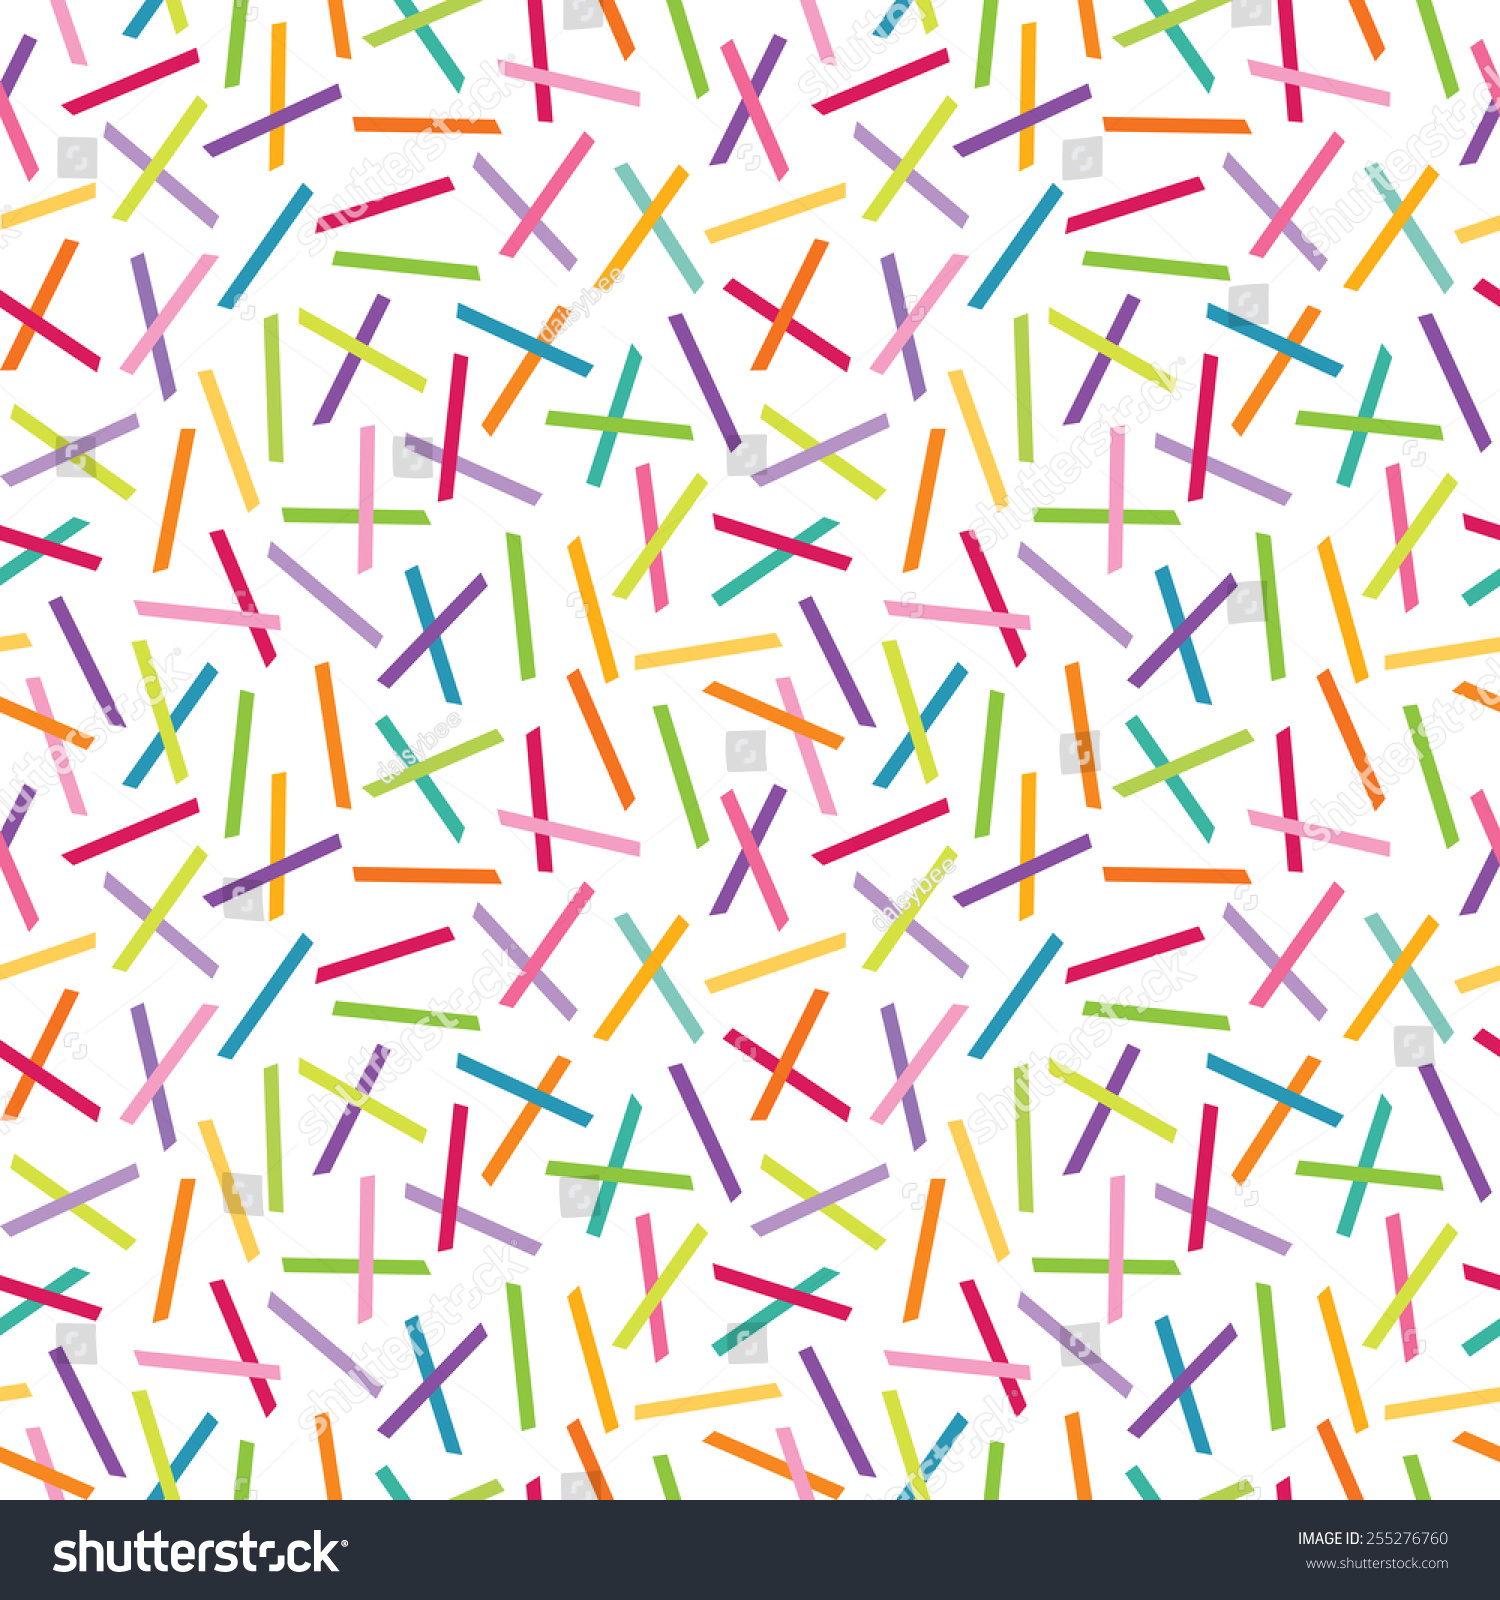 Cute seamless geometric background bright colors stock for Cute paper designs